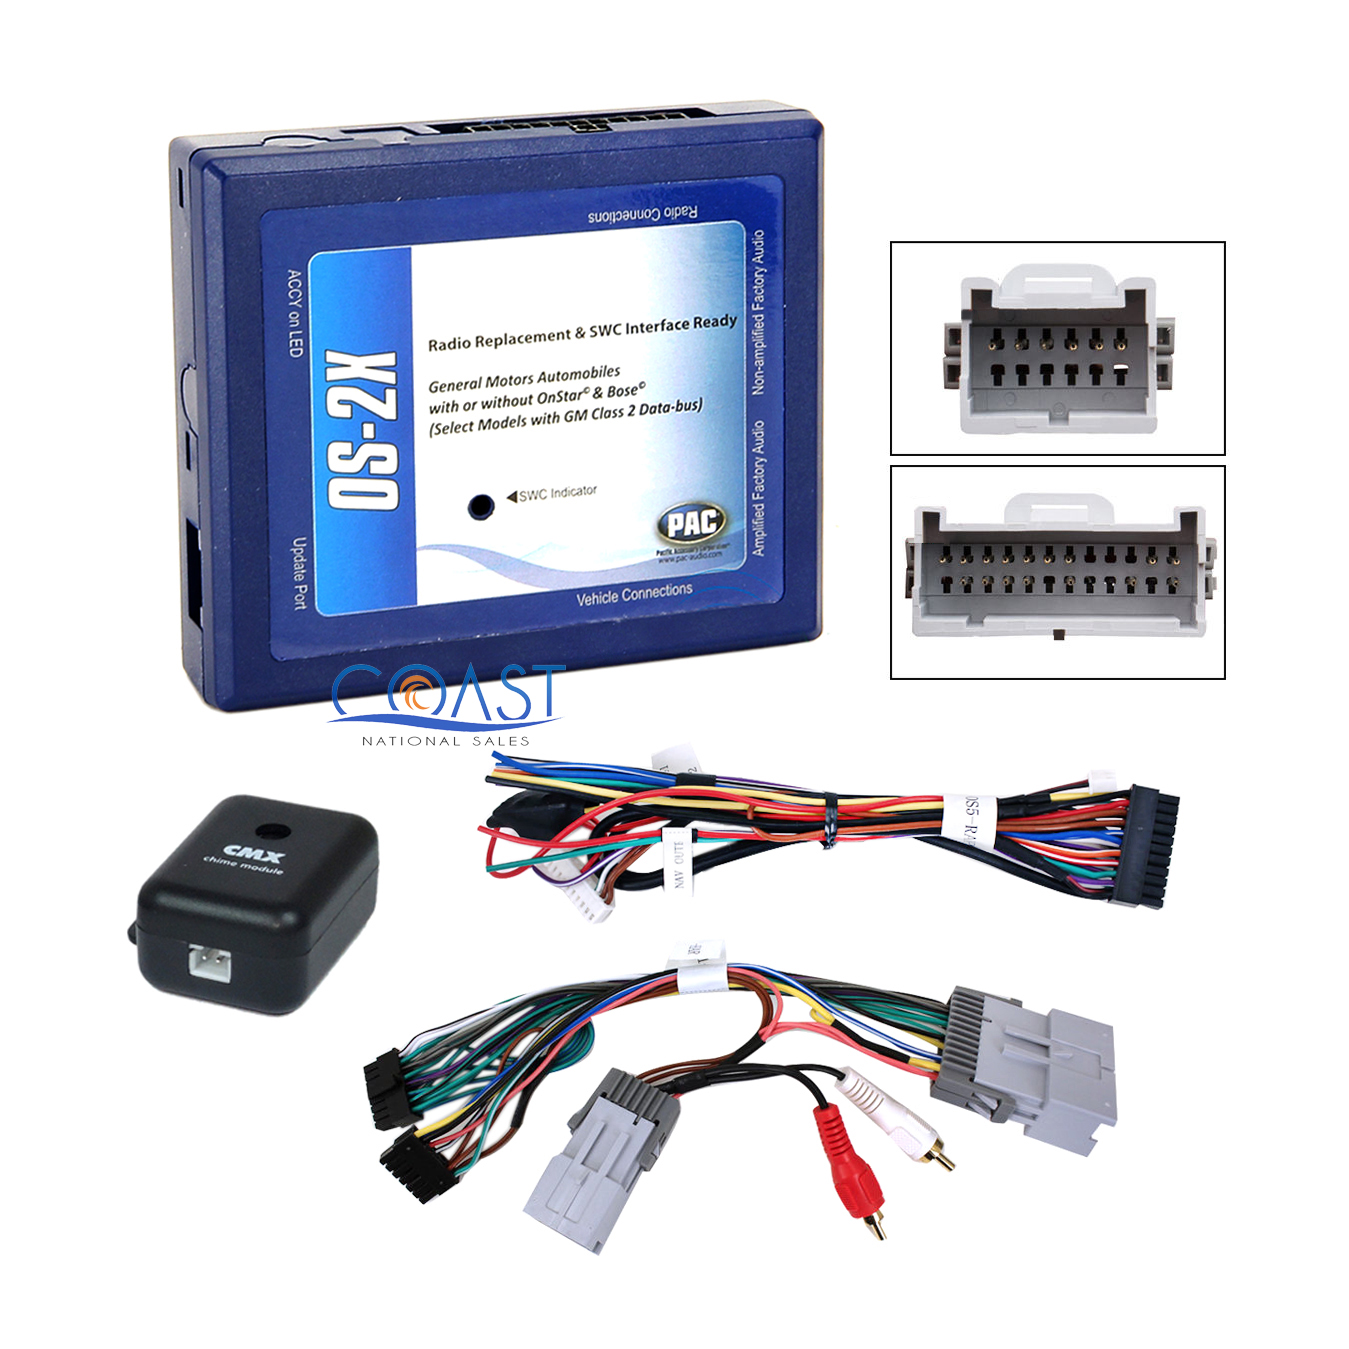 hight resolution of car radio bose onstar interface wiring harness for 2000 up gm chevrolet pontiac